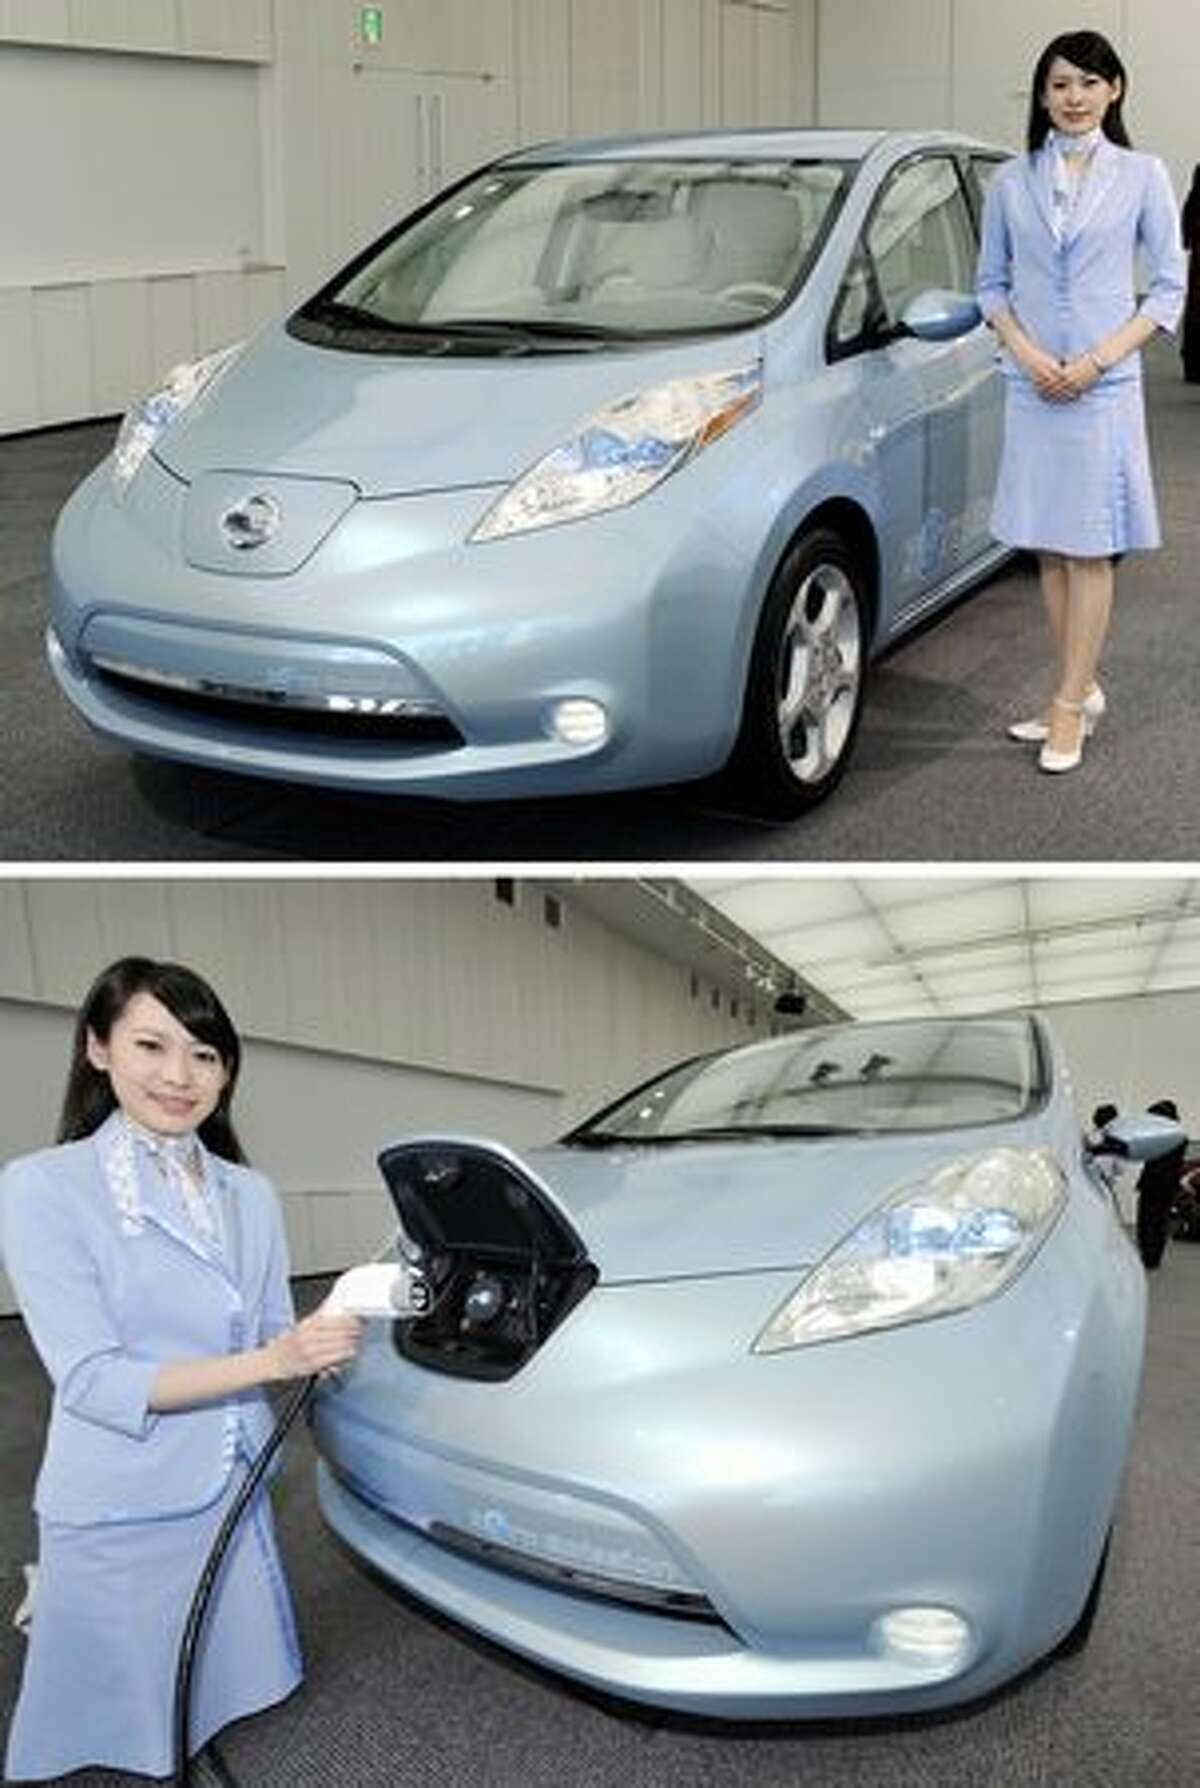 A combo picture shows an employee of Japan's auto giant Nissan posing with their new electric vehicle, the